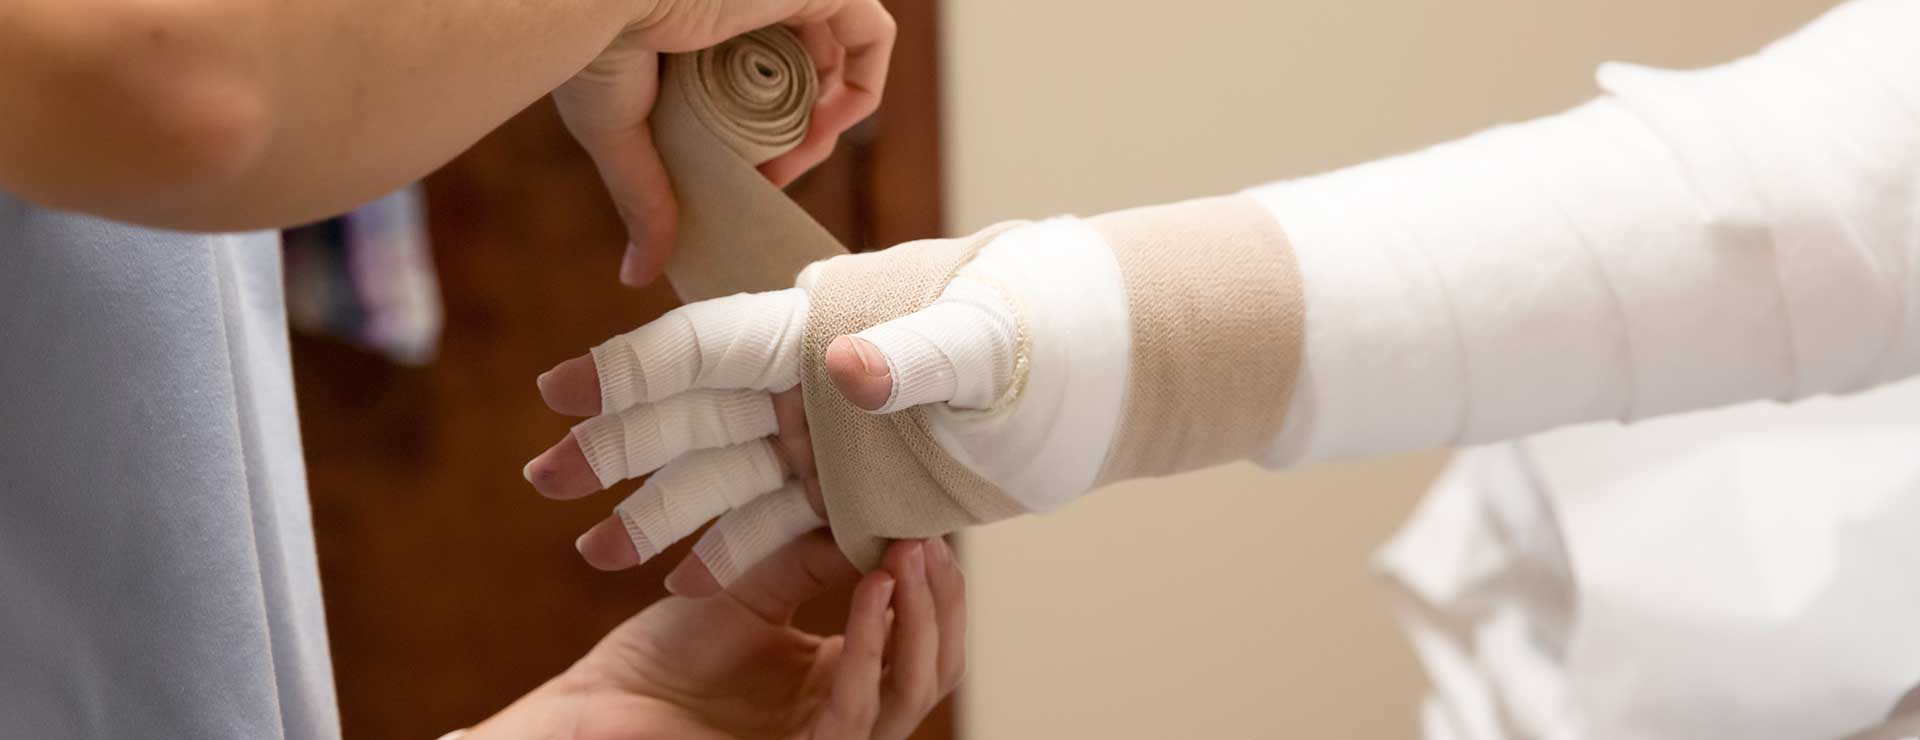 A lymphedema patient gets their arm bandaged.